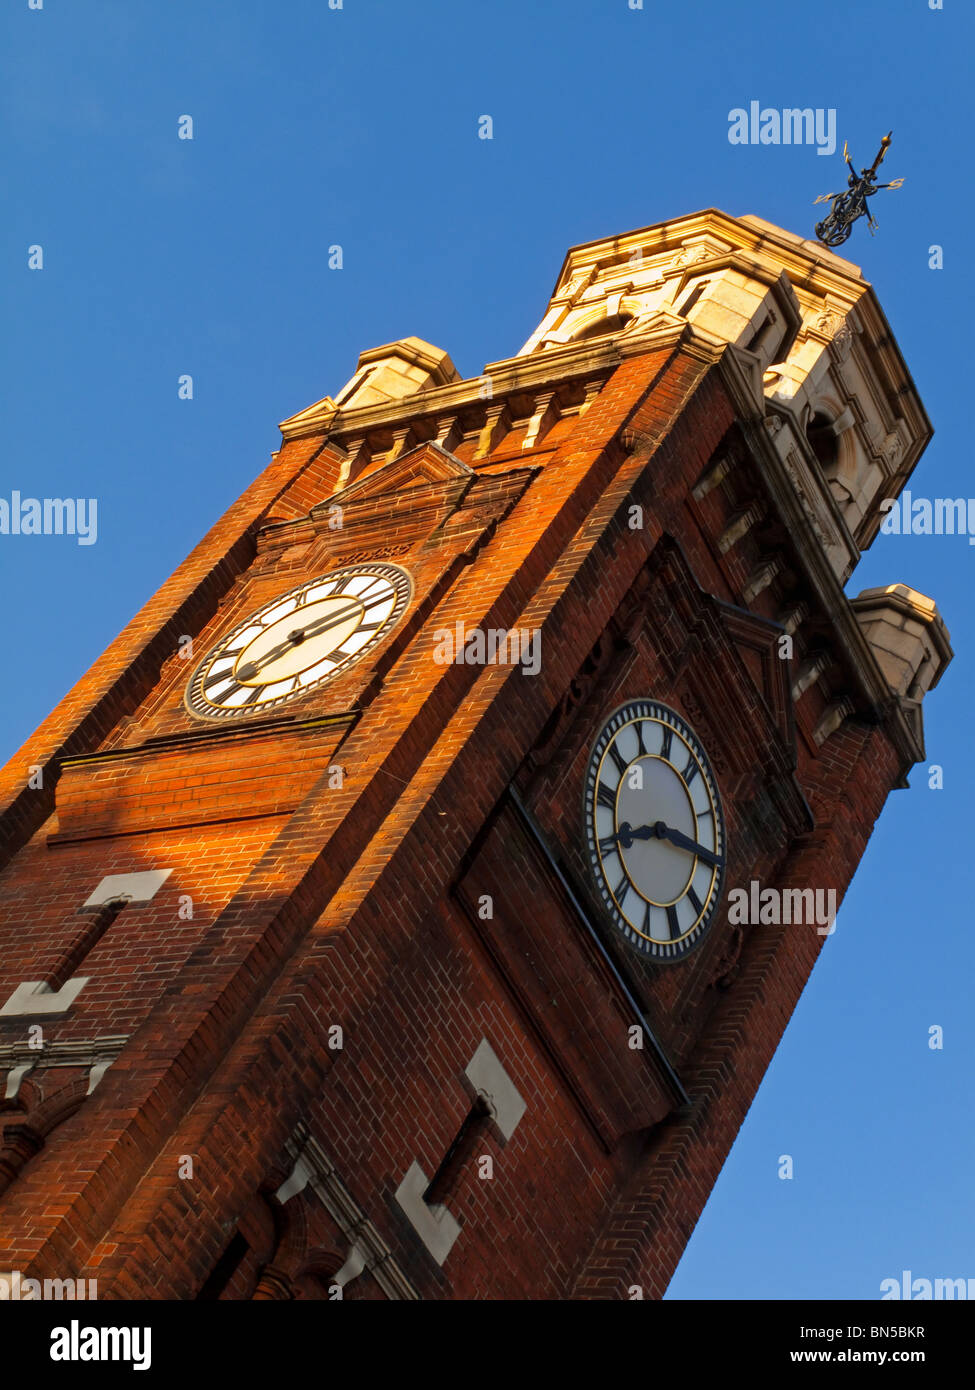 Clock tower in the centre of Crouch End Broadway in Haringey North London built as a memorial to Henry Reader Williams - Stock Image